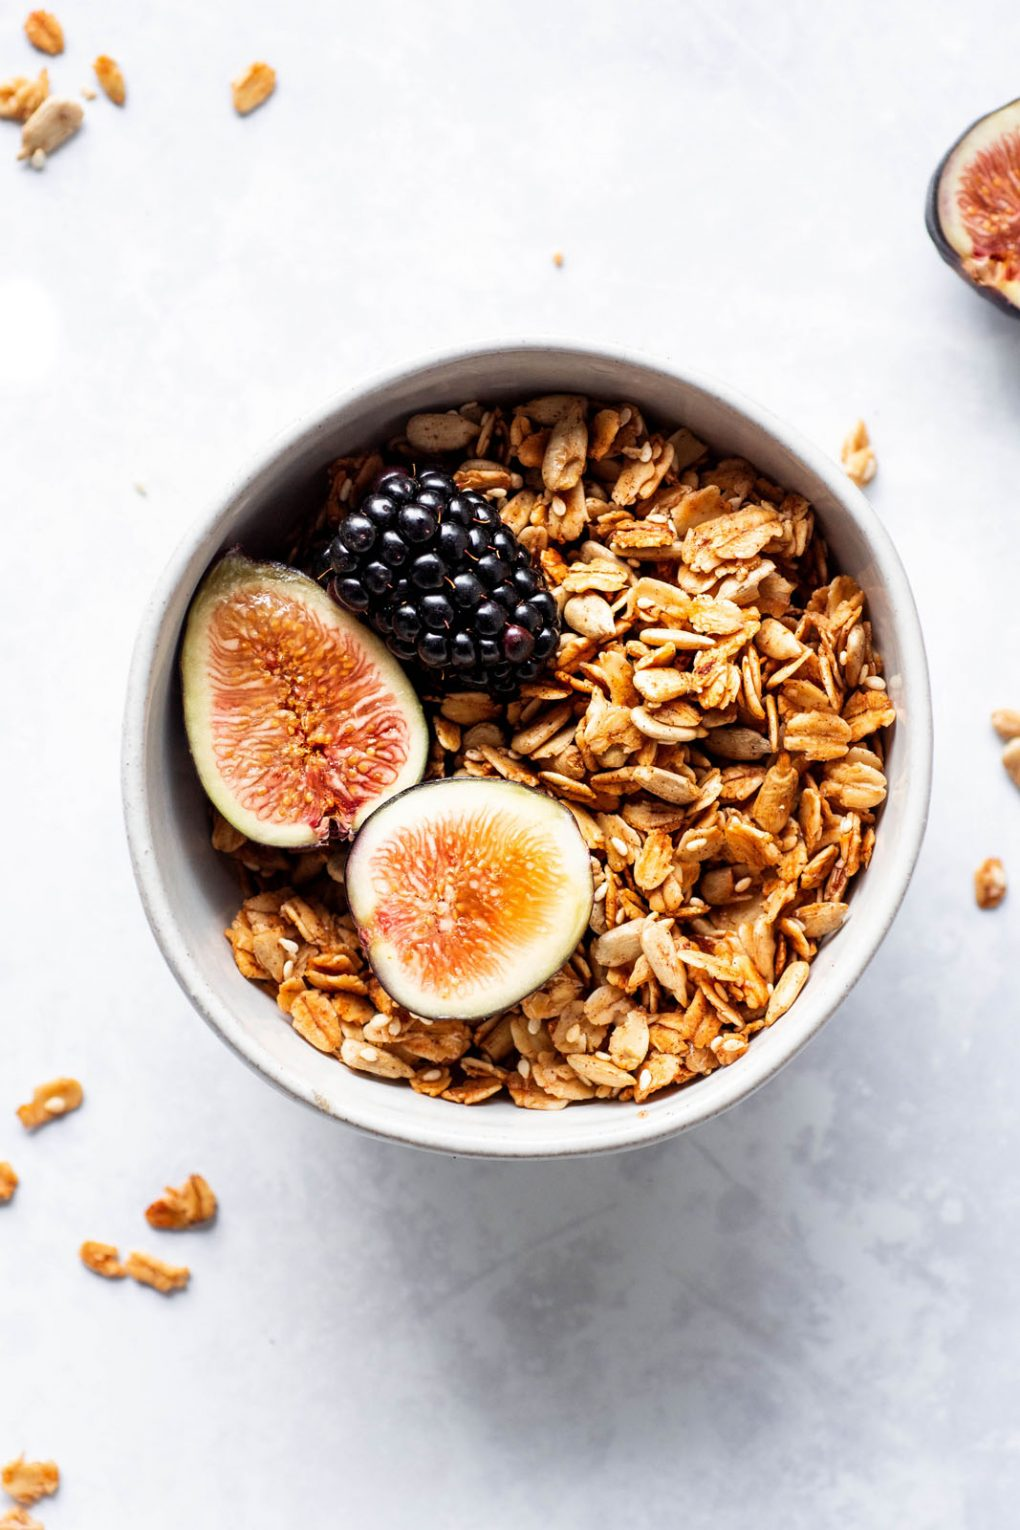 A small white bowl filled with maple sesame granola, cut figs, and blackberries. On a white background with scattered granola around the bowl.